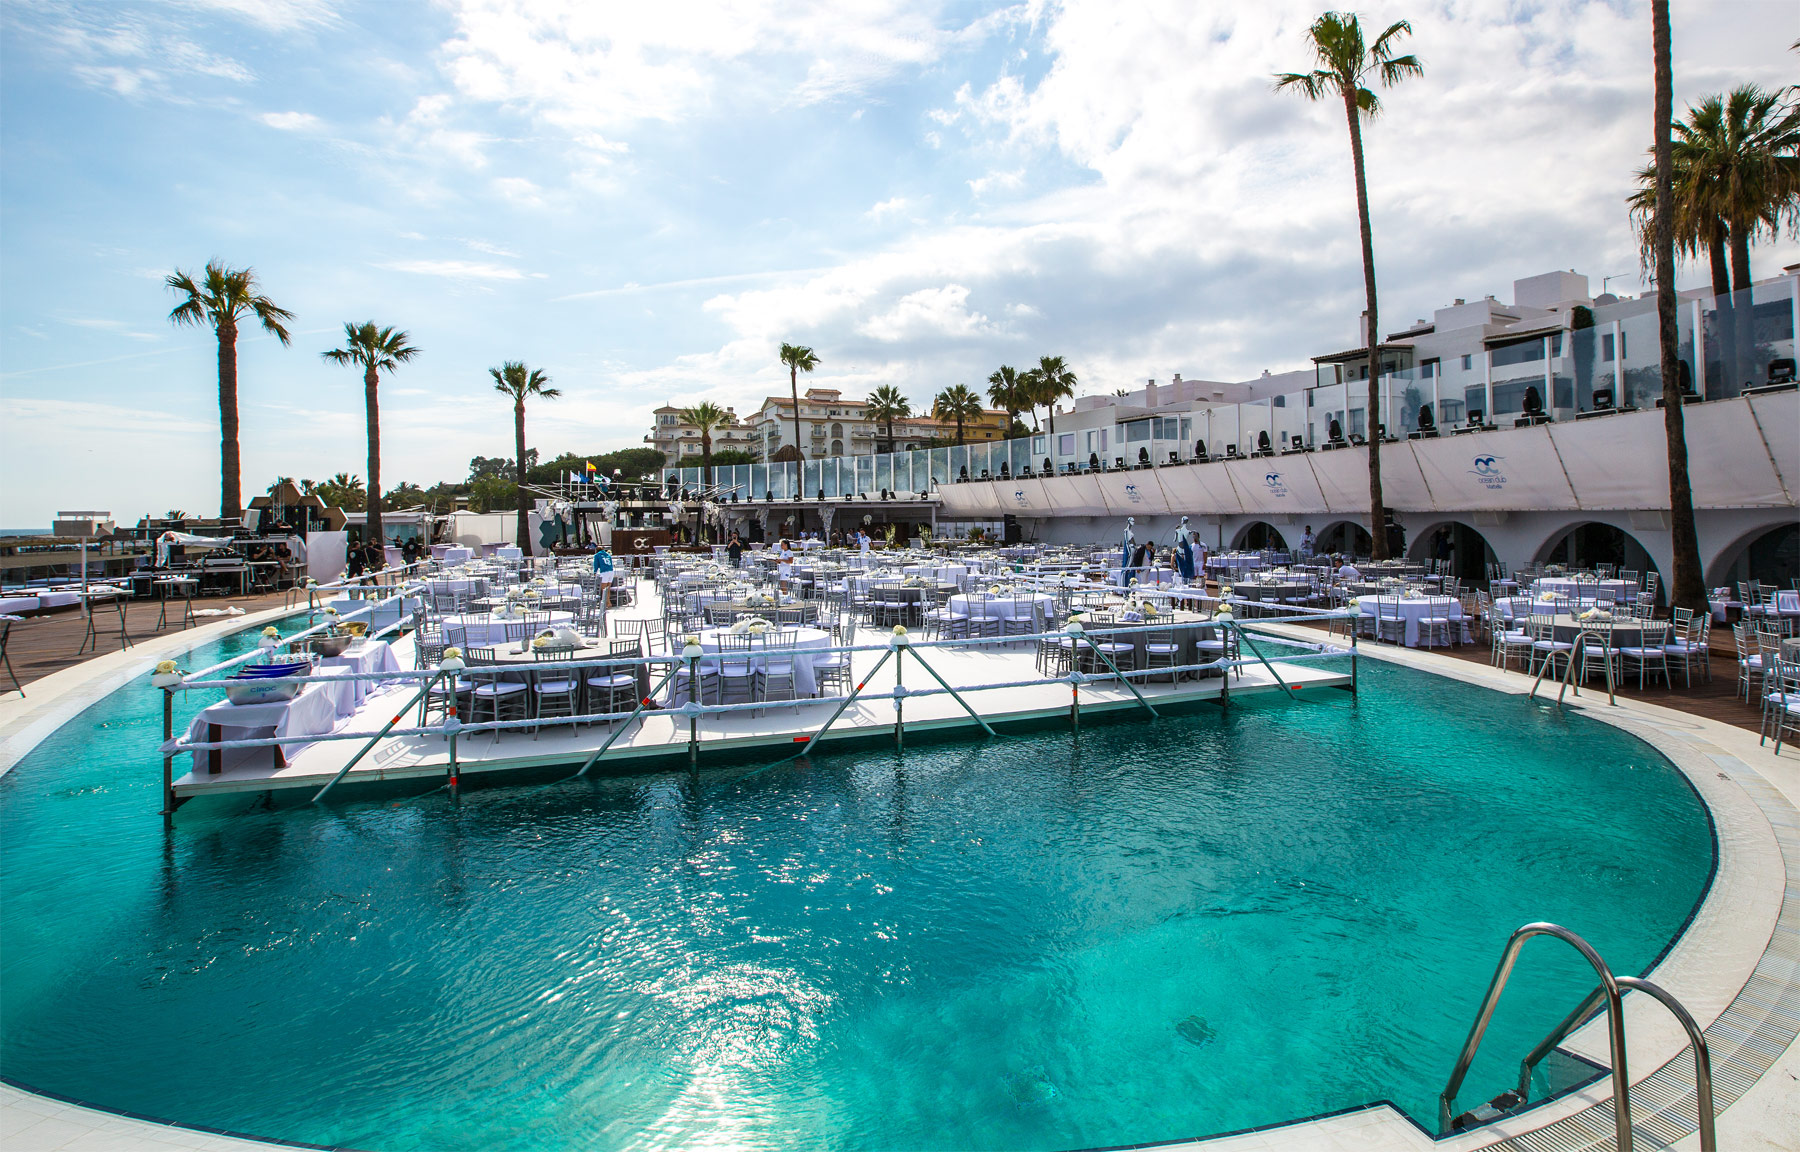 A World Of Whites And Blues At Ocean Club Marbella